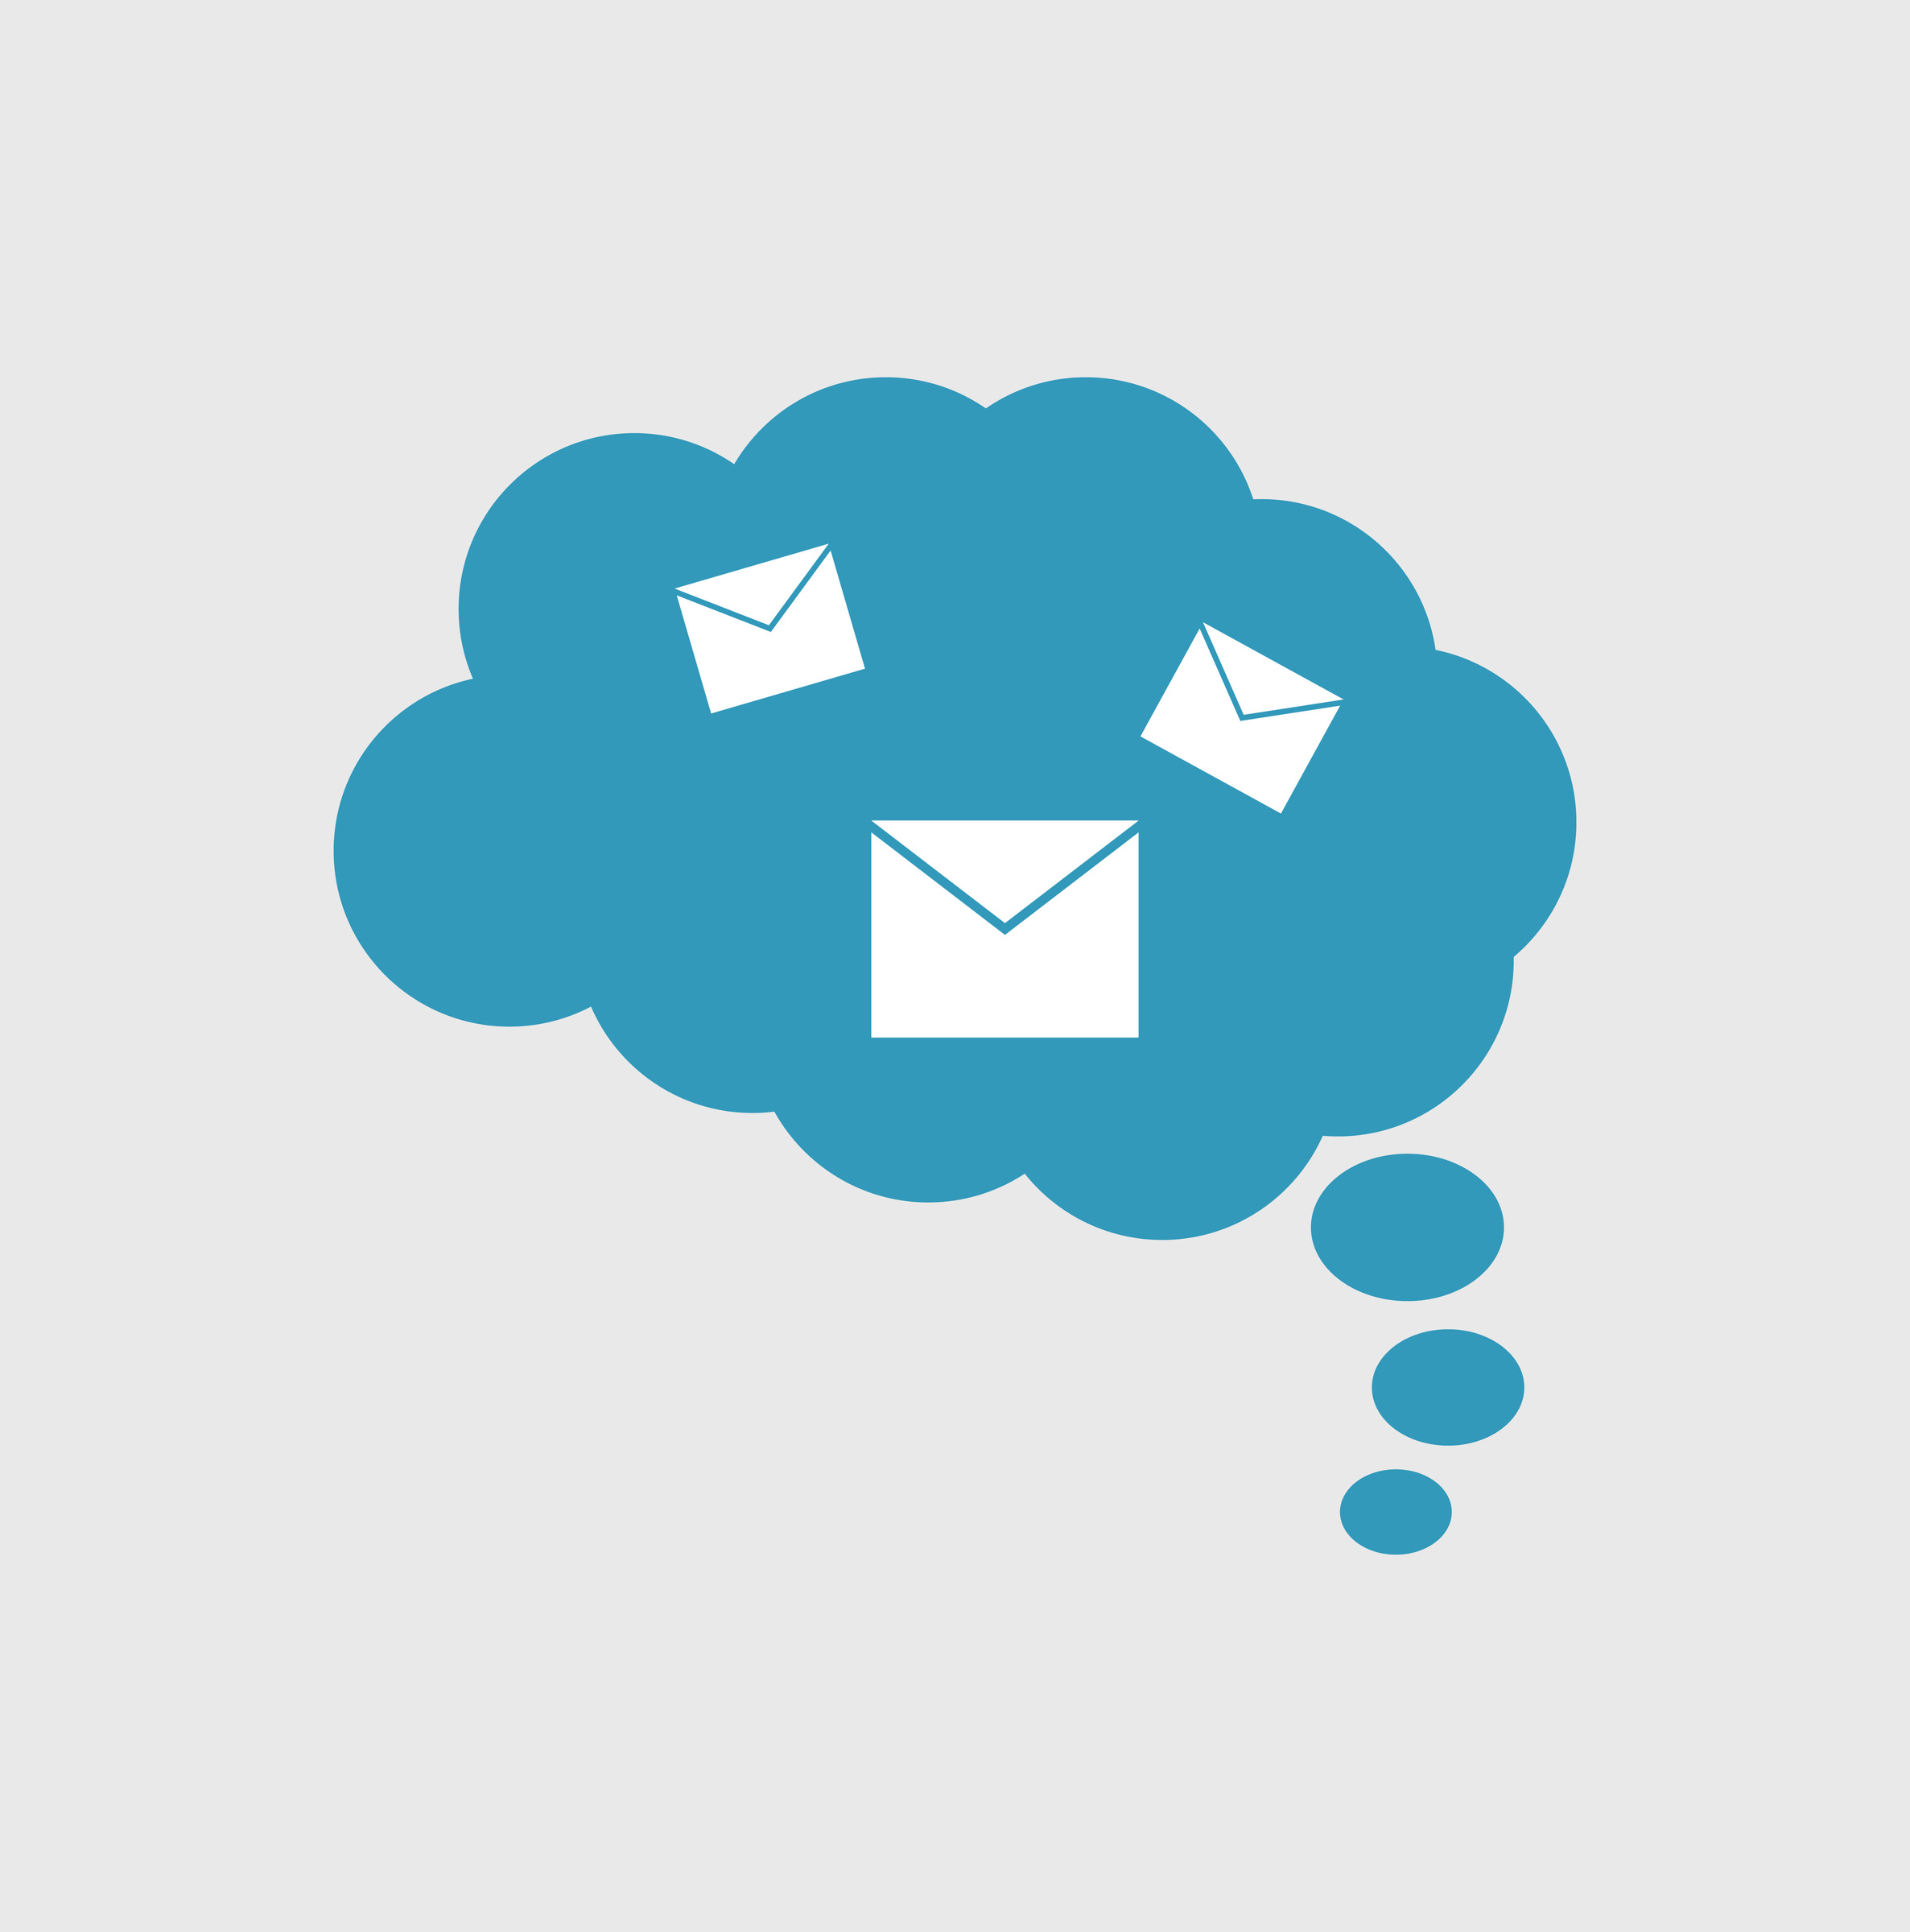 Email-Subject Lines